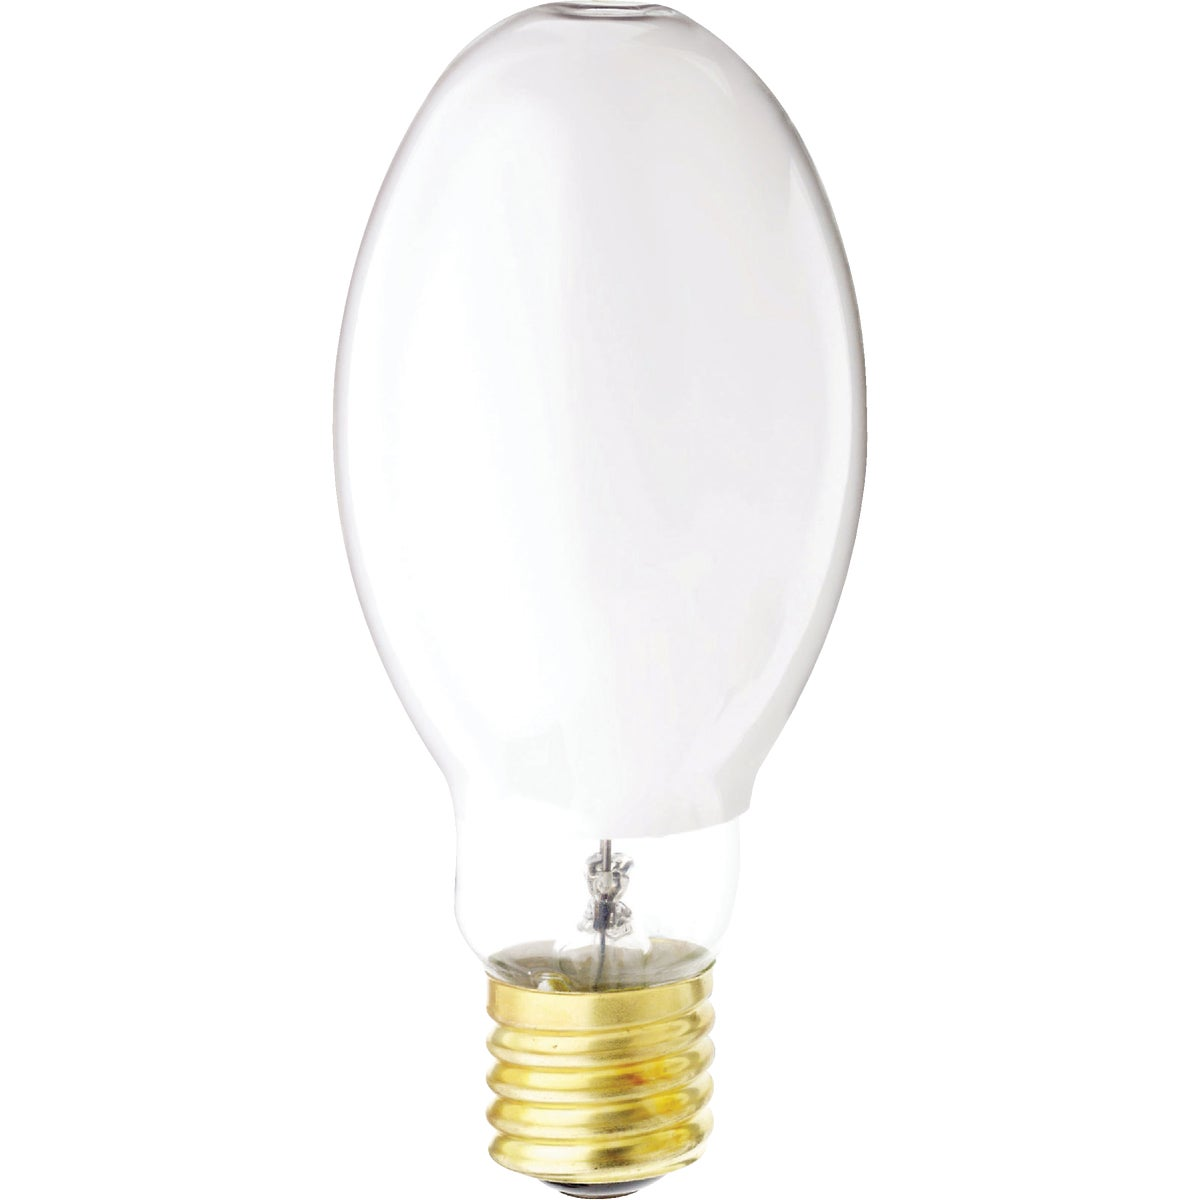 175W MERCURY VAPOR BULB - 26439 HR175DX39 by G E Lighting Incom